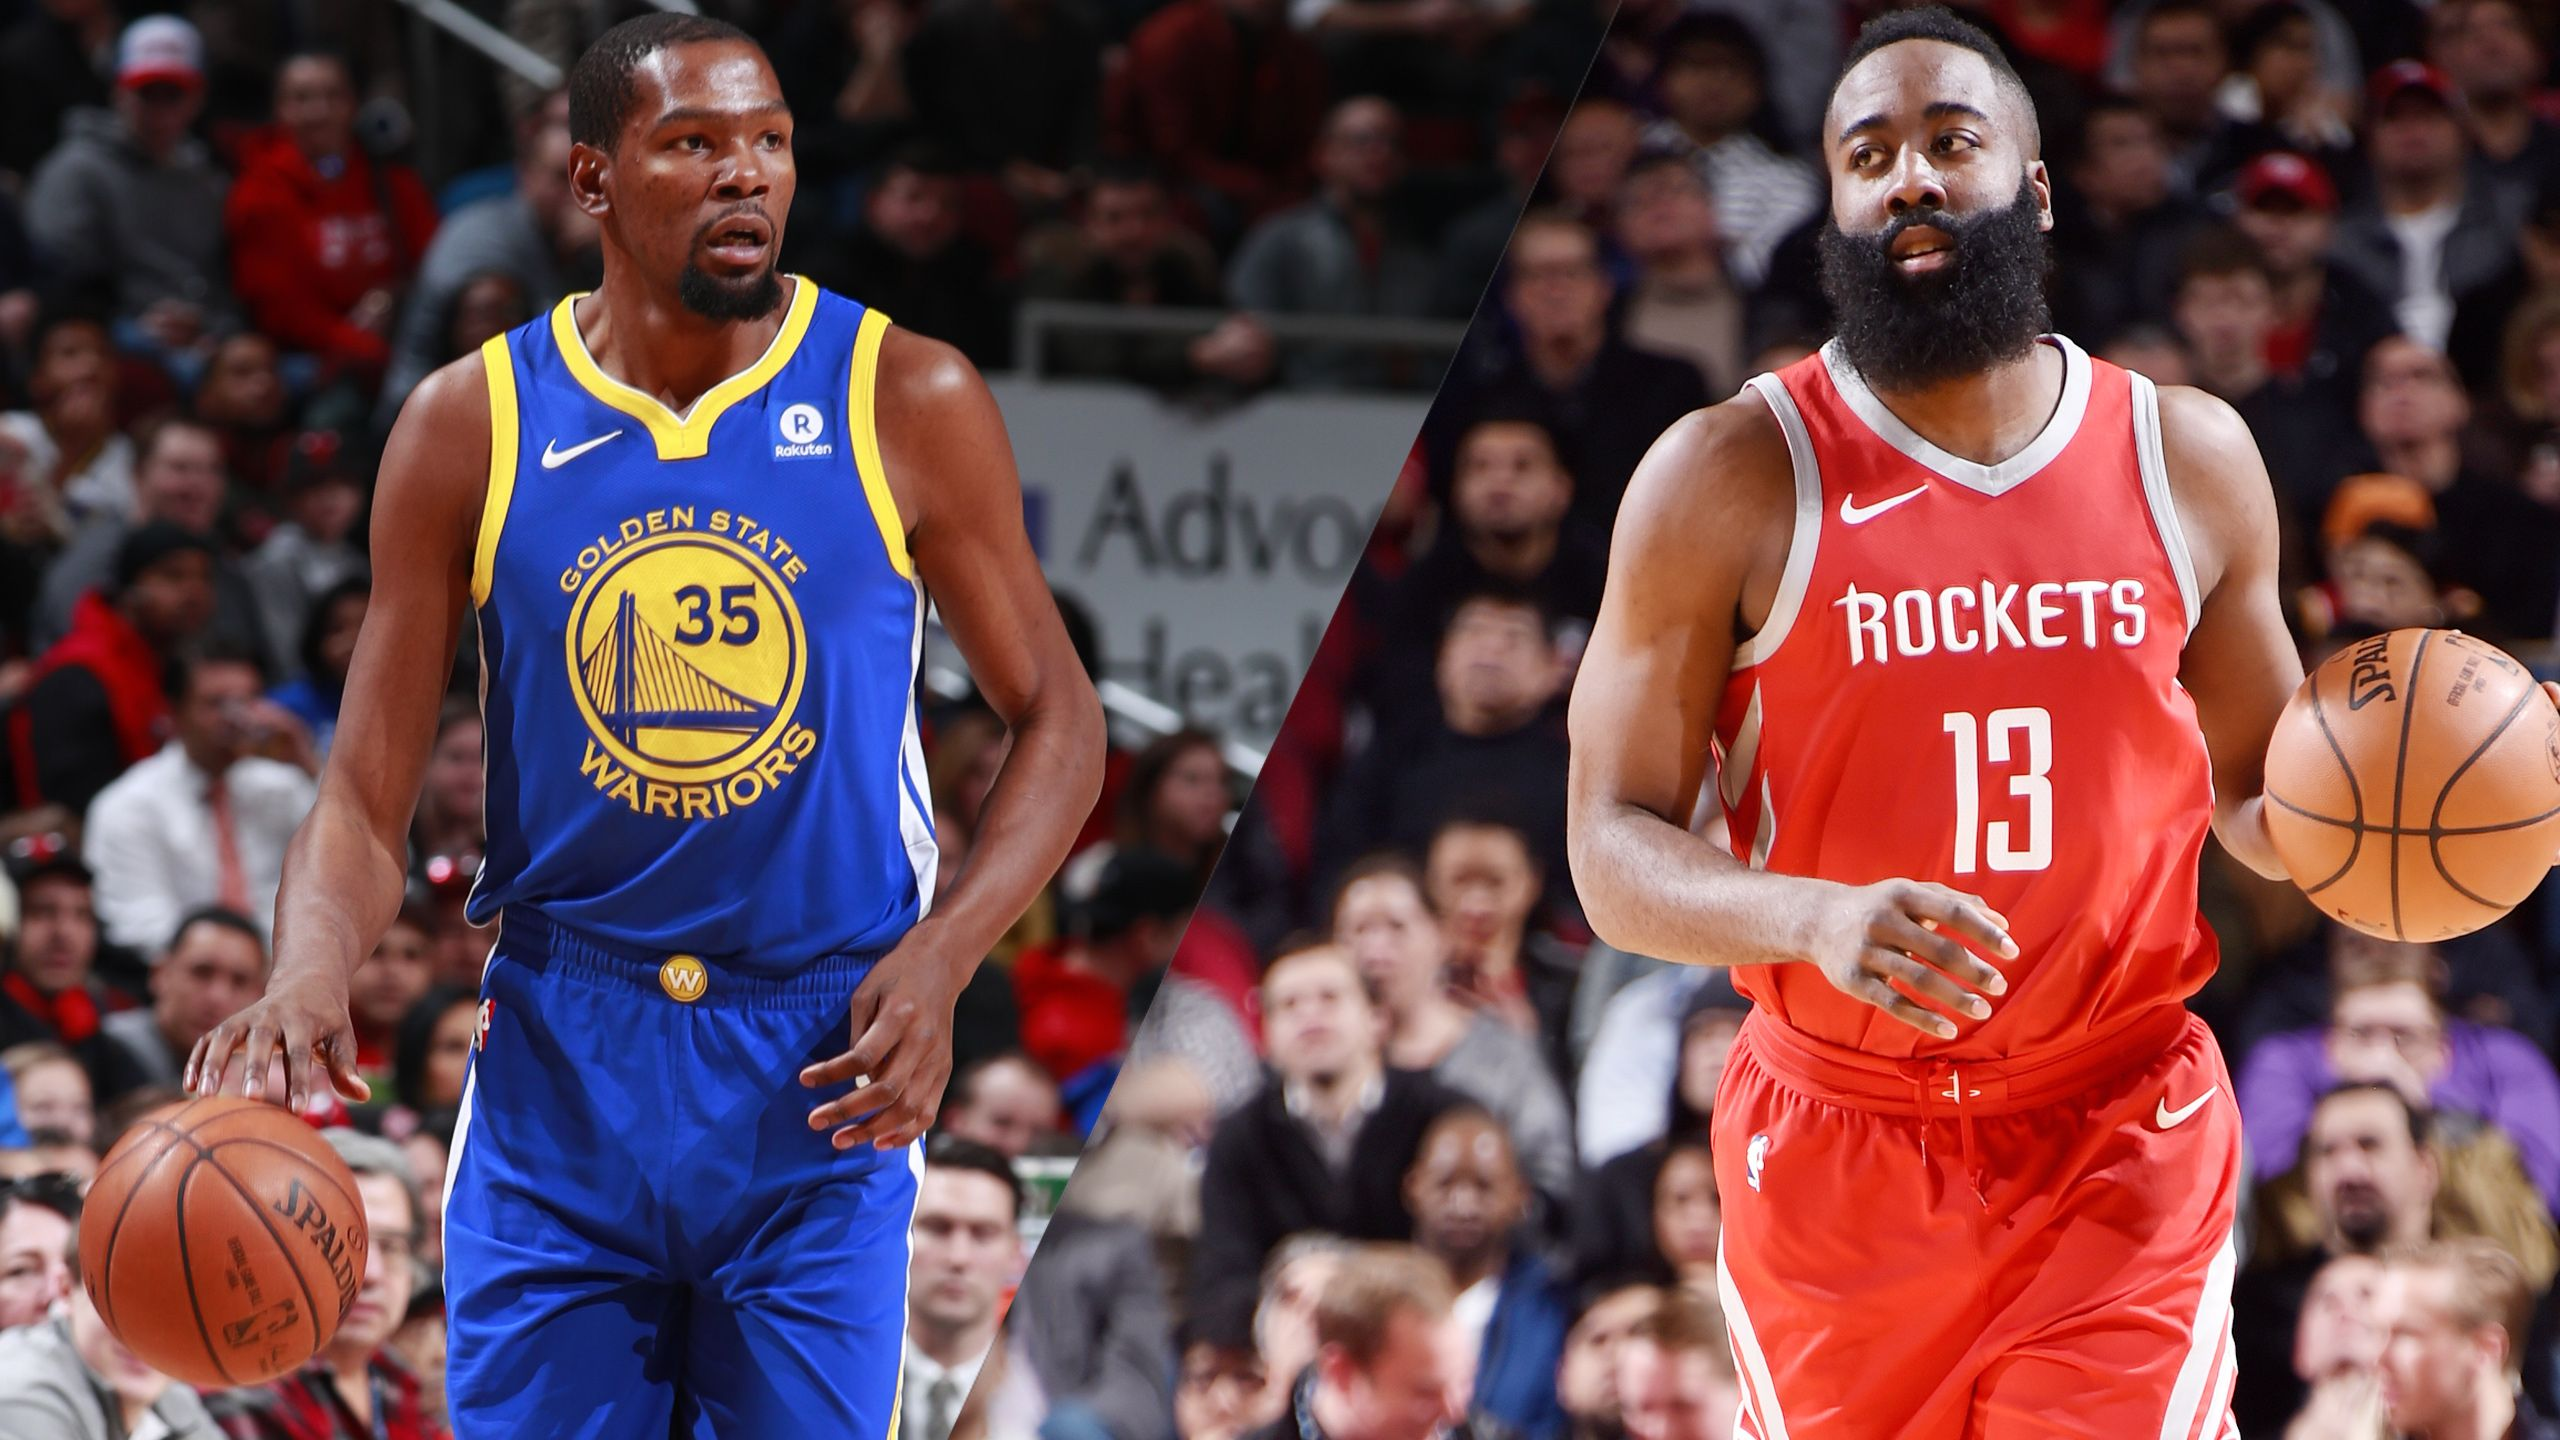 Golden State Warriors vs. Houston Rockets (re-air)